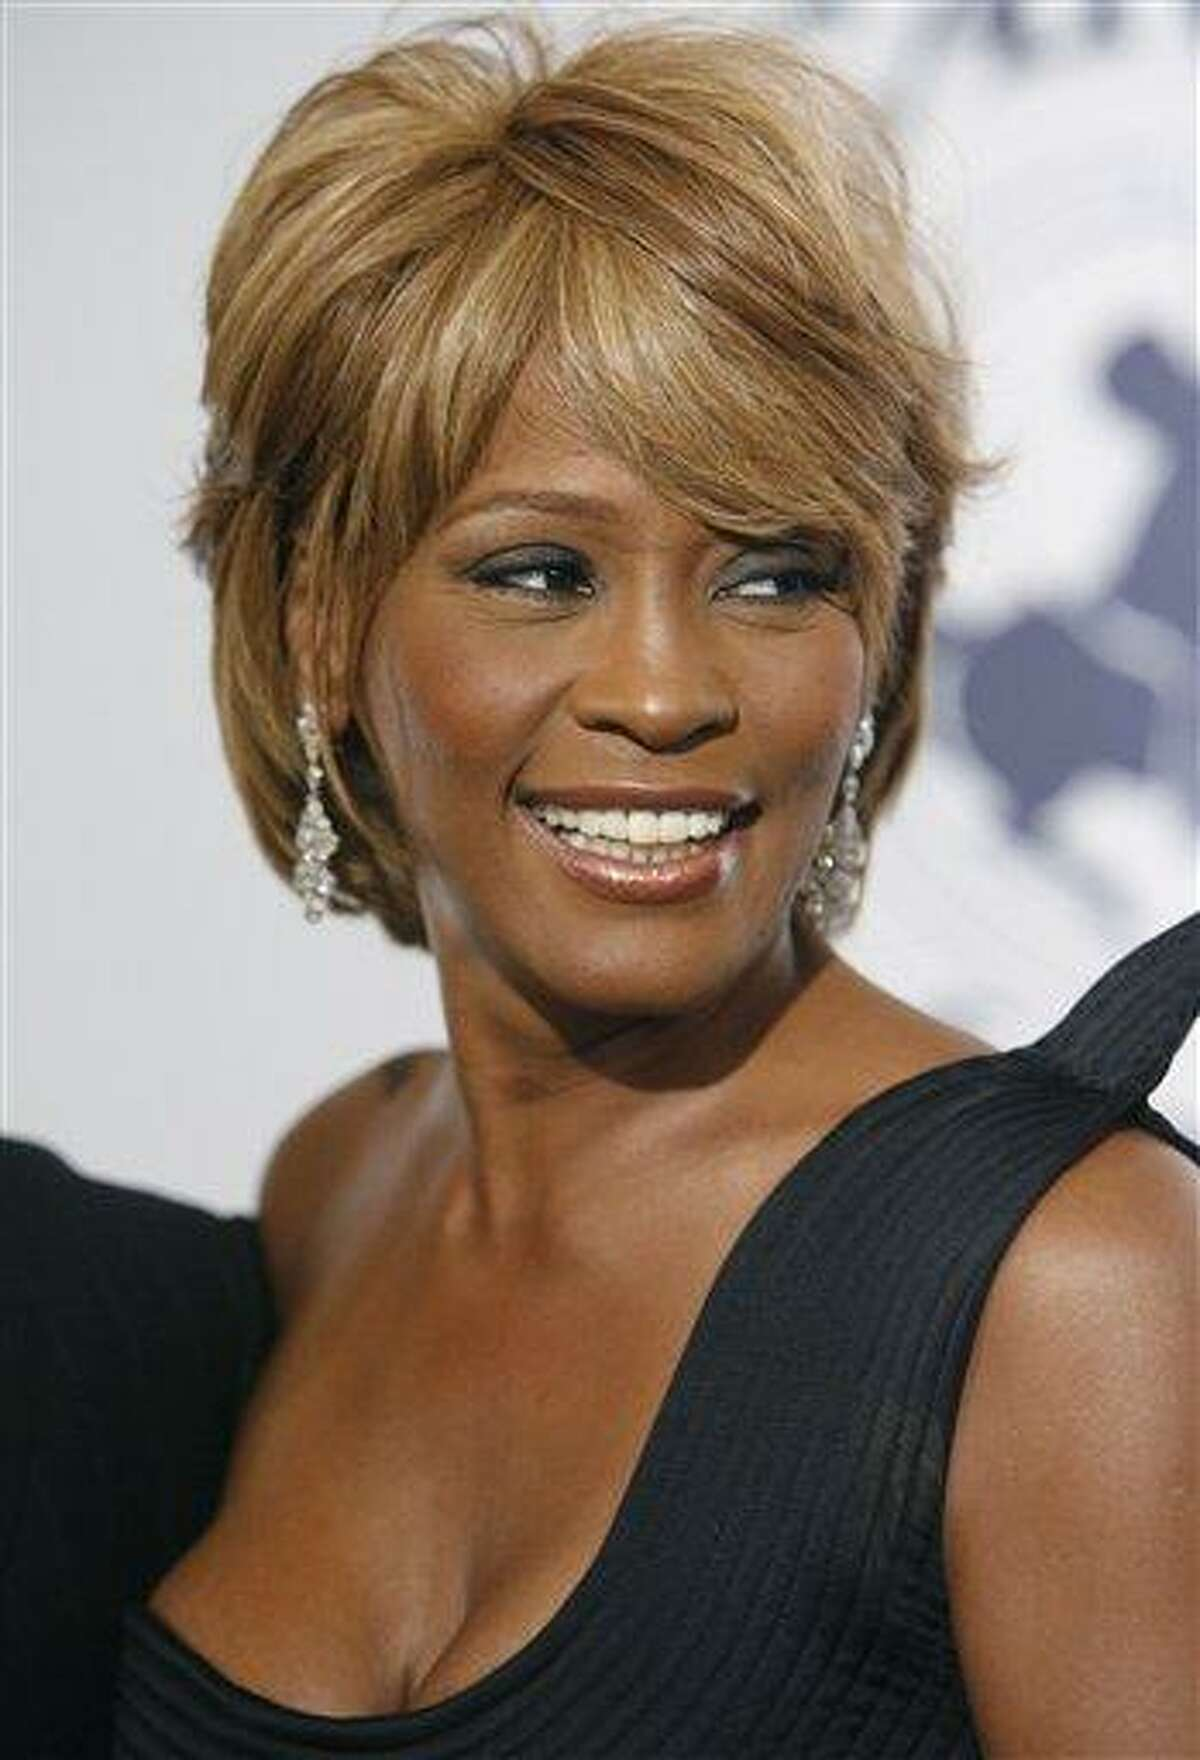 FILE - In this Oct. 28, 2006, file photo, musician Whitney Houston arrives at the 17th Carousel of Hope Ball benefiting the Barbara Davis Center for Childhood Diabetes in Beverly Hills, Calif. Coroner's officials said Thursday, March 22, 2012, that Houston drowned, but her death was also caused by heart disease and cocaine use that suggested she was chronically using the drug. Houston died Feb. 11, in California at the age of 48. (AP Photo/Matt Sayles)